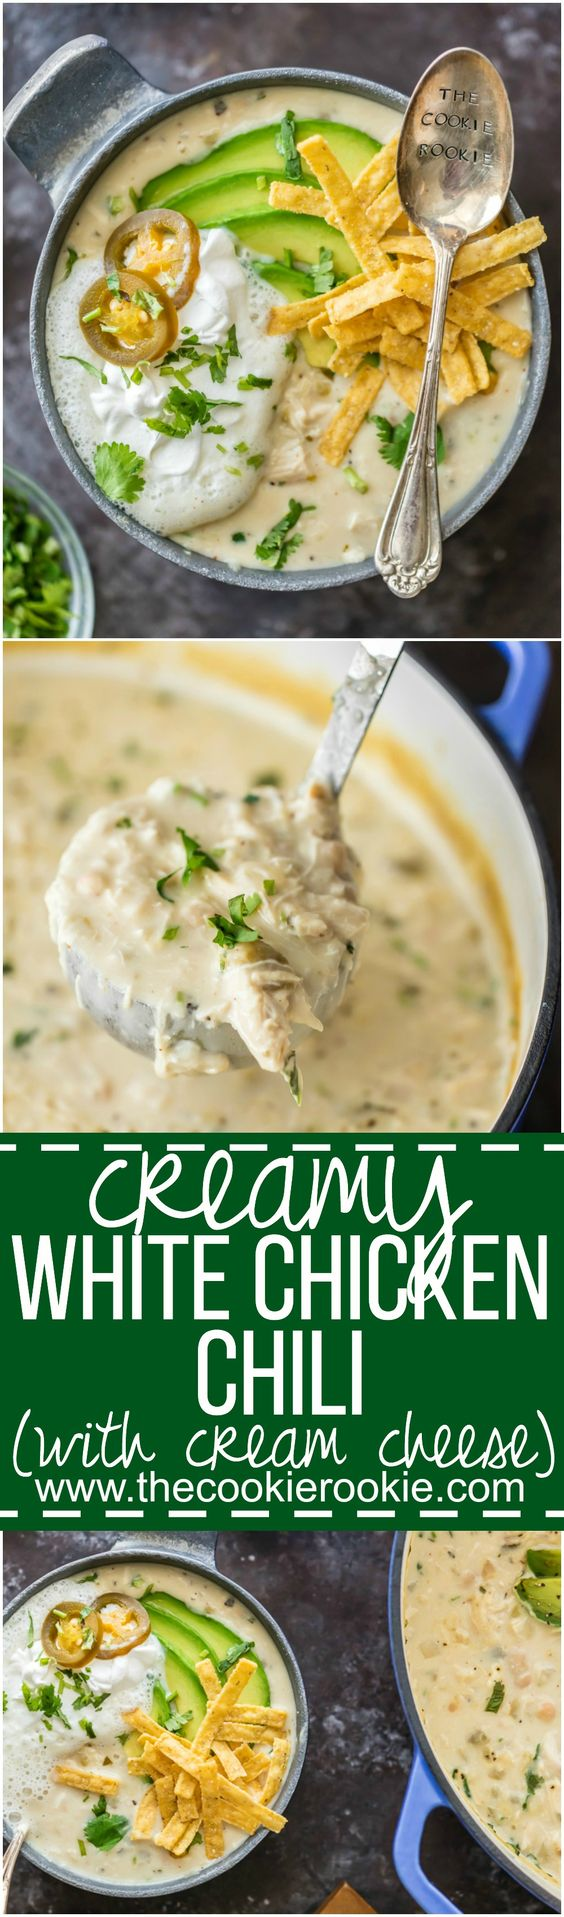 CREAMY WHITE CHICKEN CHILI made with CREAM CHEESE is the ultimate comfort food…